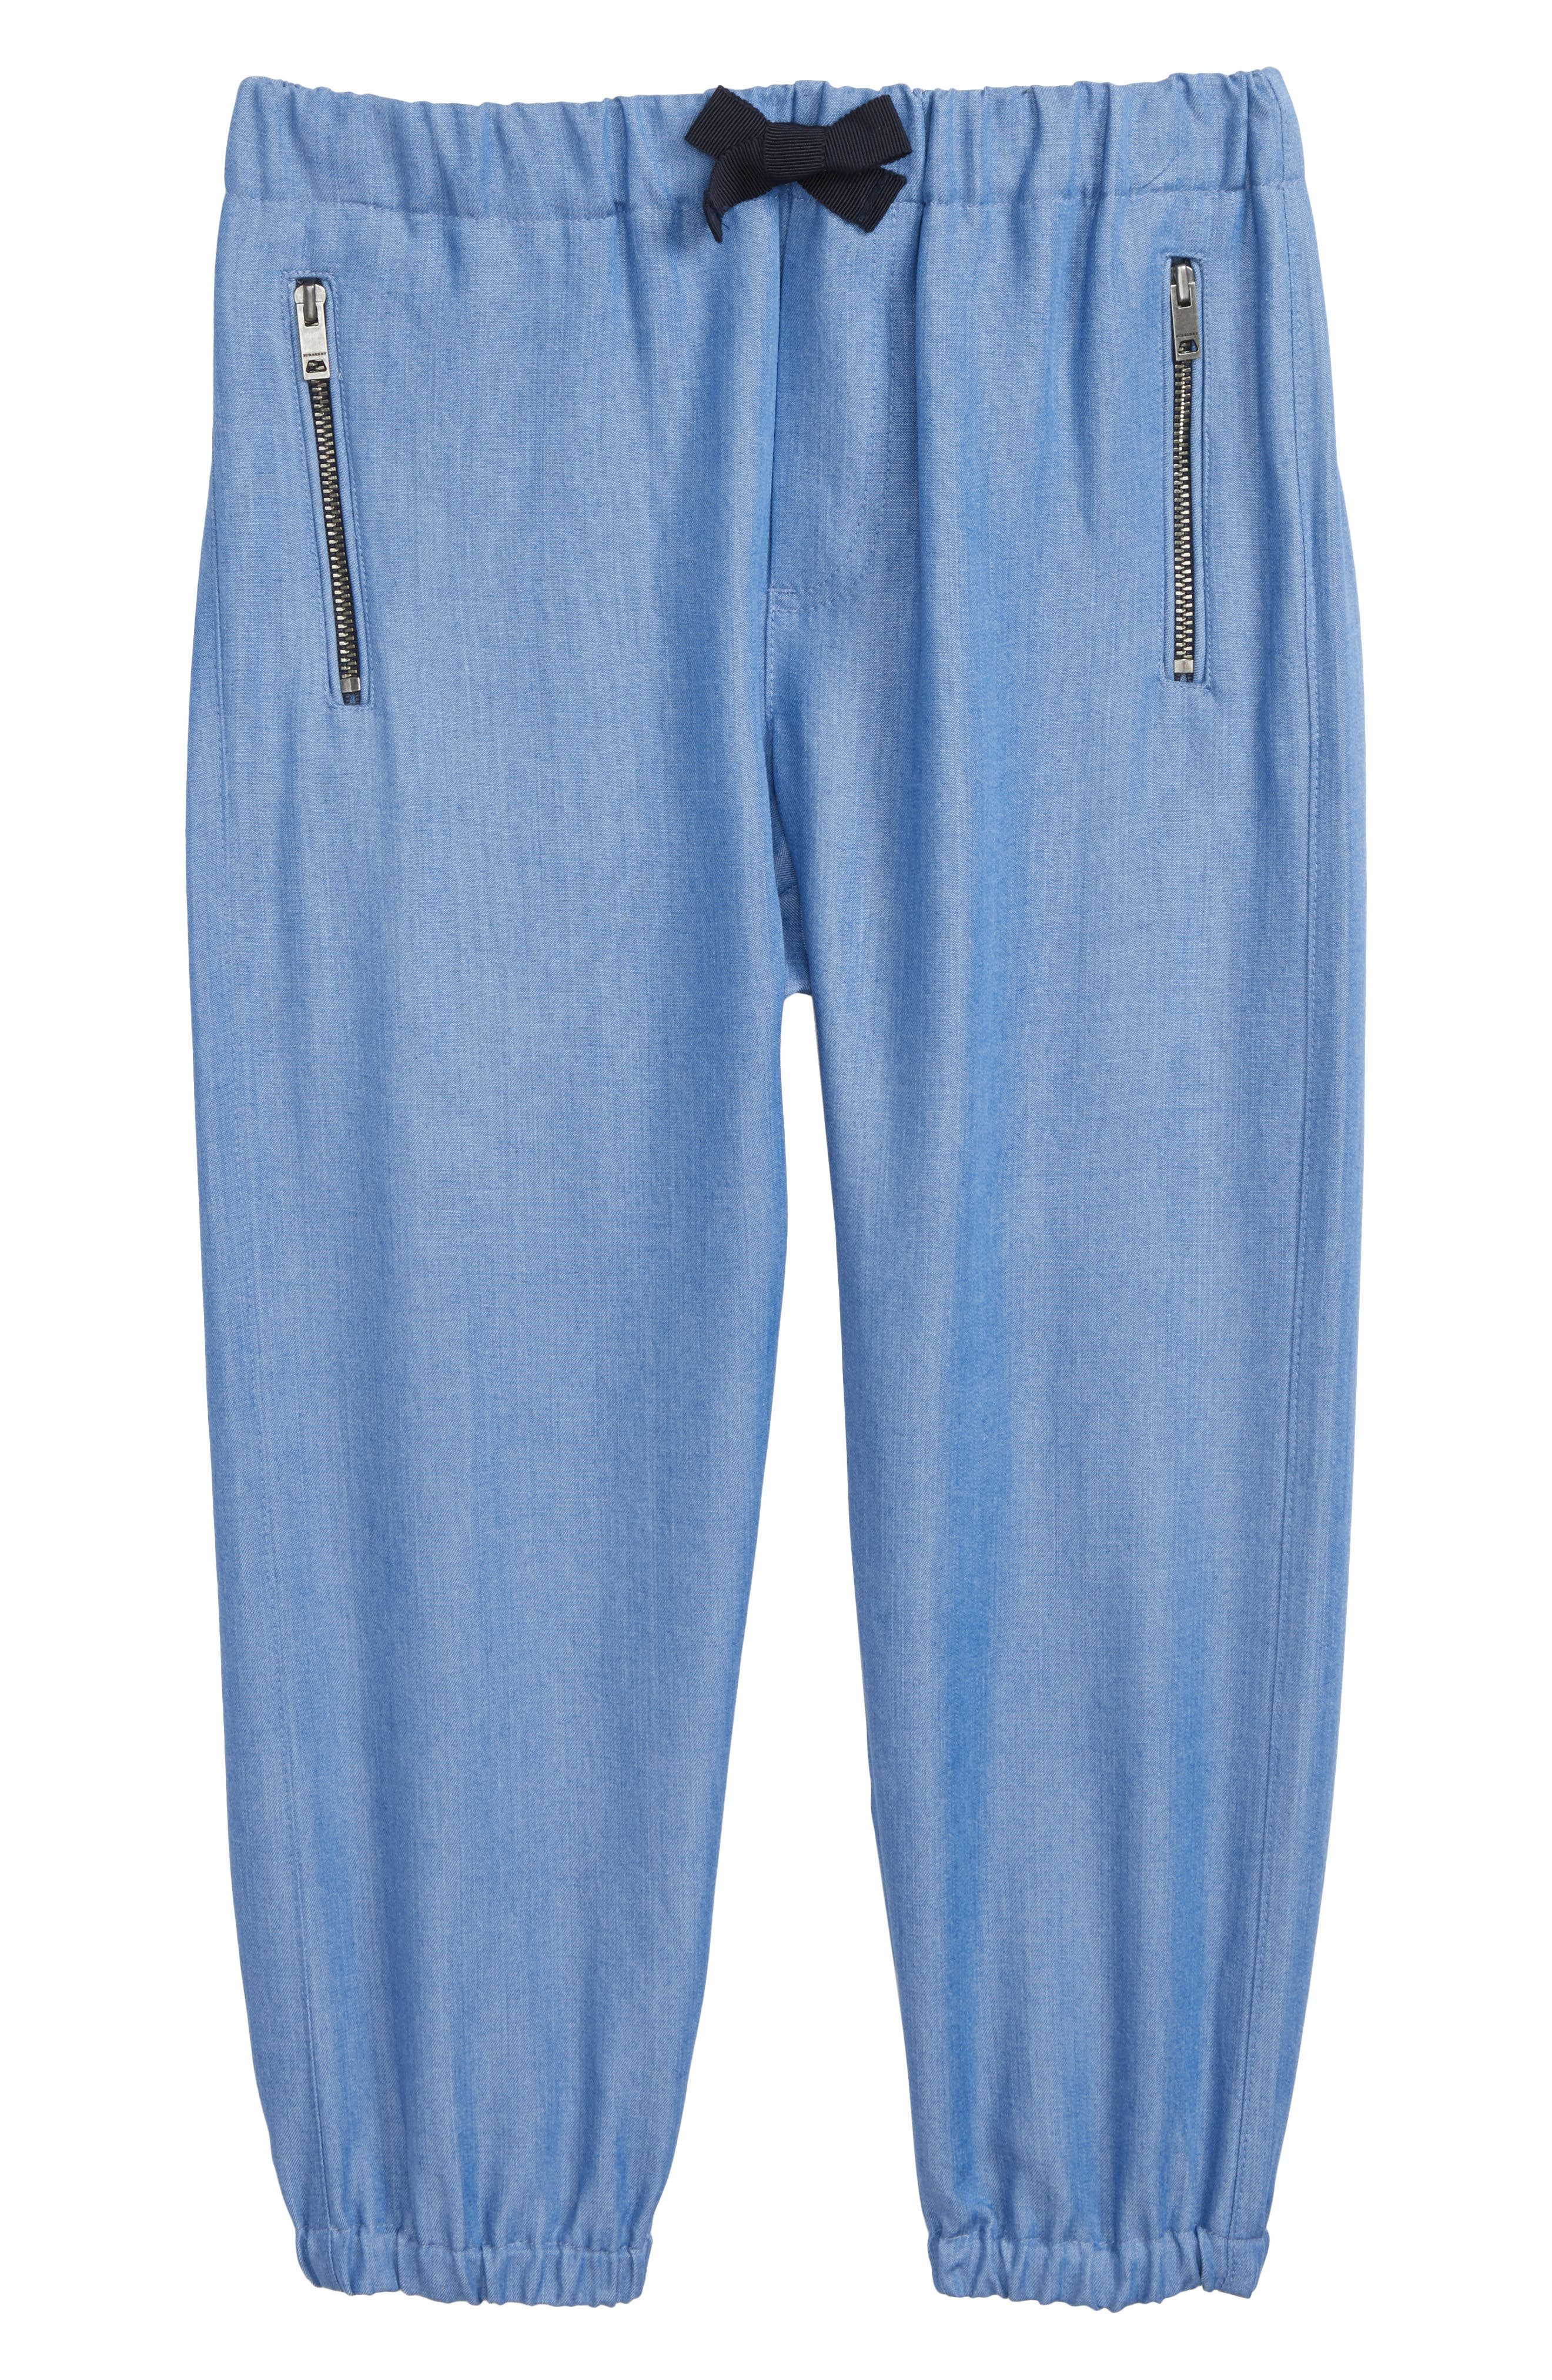 Phillie Chambray Pants,                         Main,                         color, Steel Blue